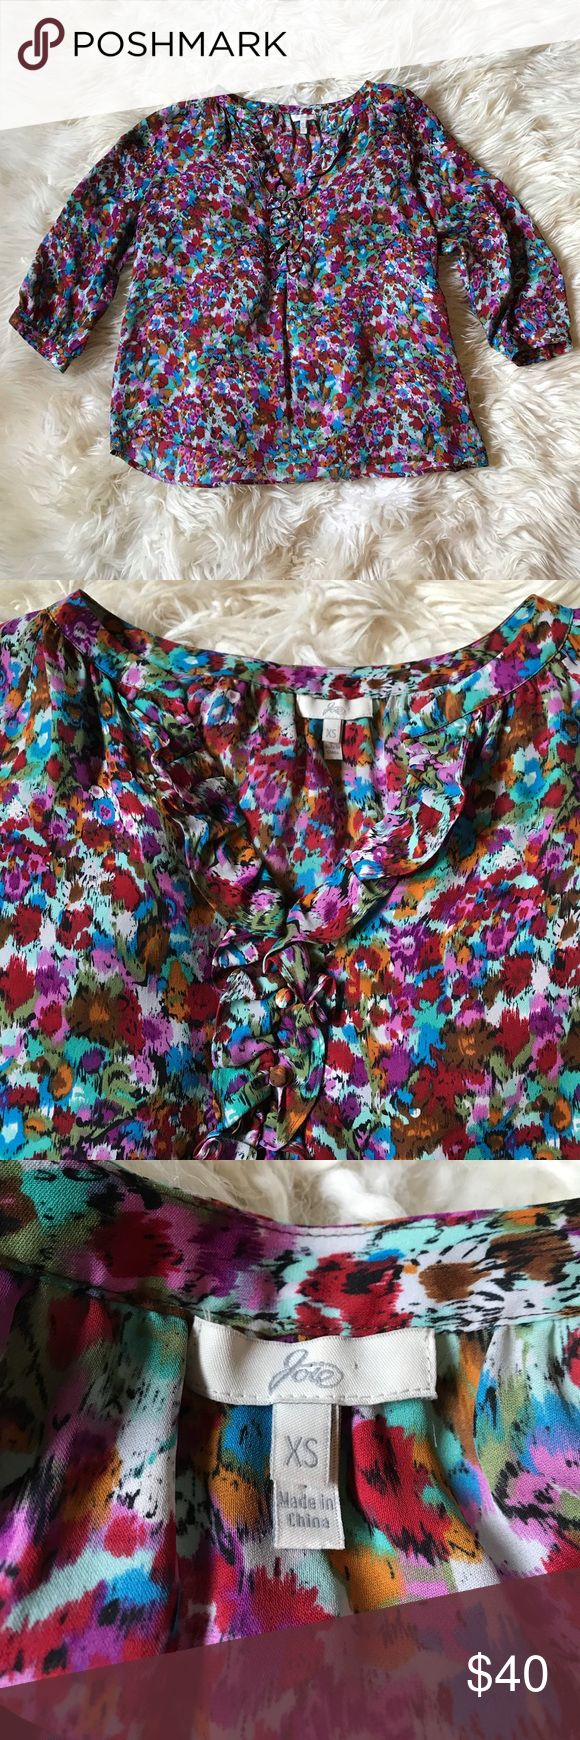 """Joie Floral Silk Blouse Bright Multicolored floral blouse by Joie. This flirty top features 100% silk floral material, a subtle ruffled neckline and fabric covered buttons on the sleeves. It pairs perfectly with a pencil skirt or jeans. Size xsmall. Length 23."""" Joie Tops"""